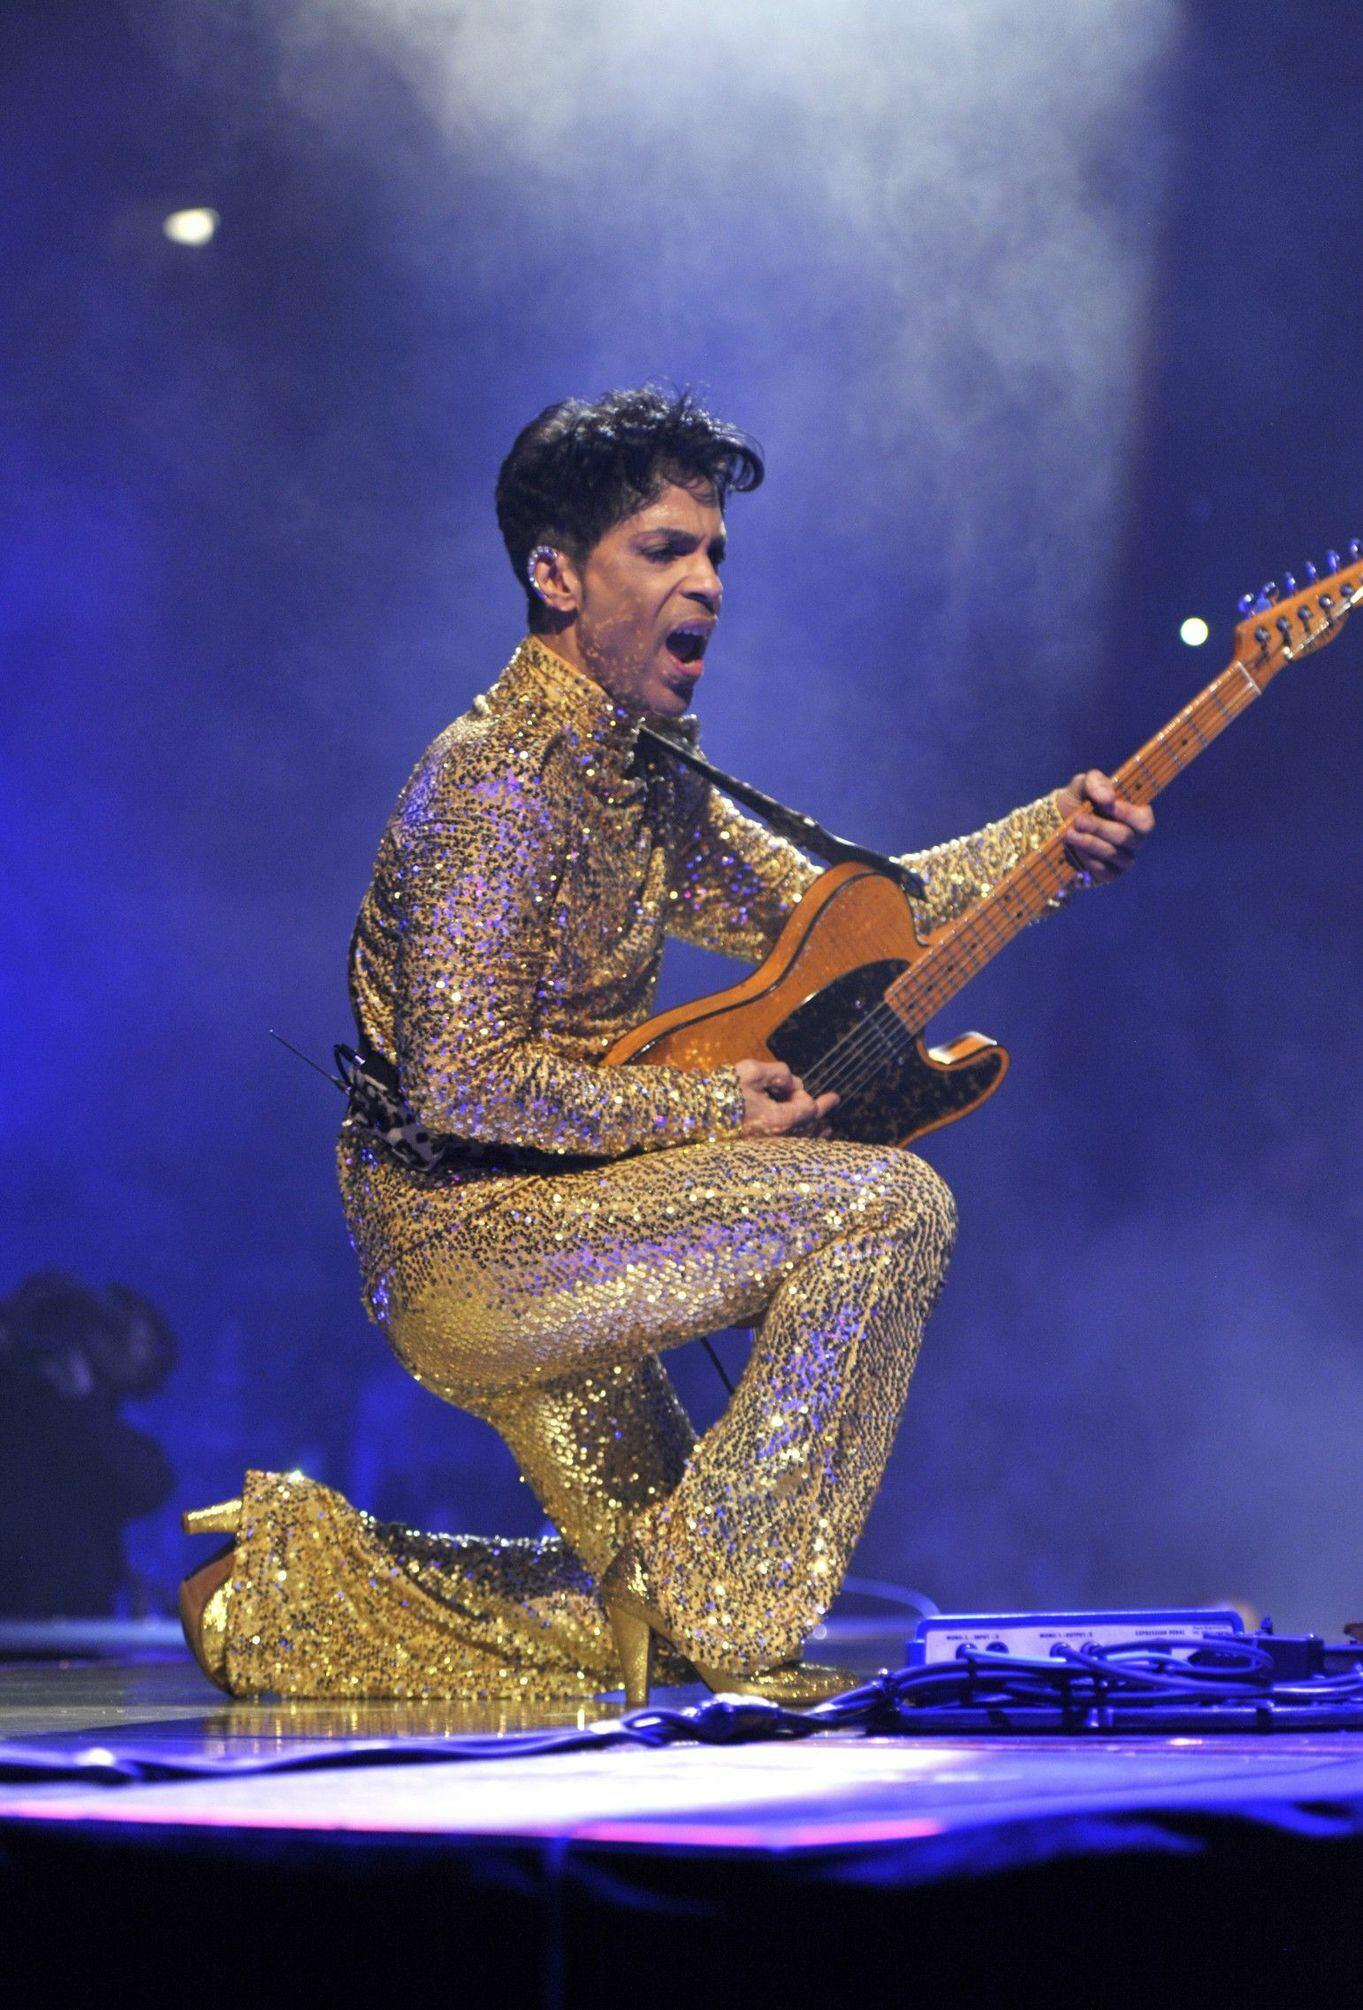 Prince wearing gold sequins